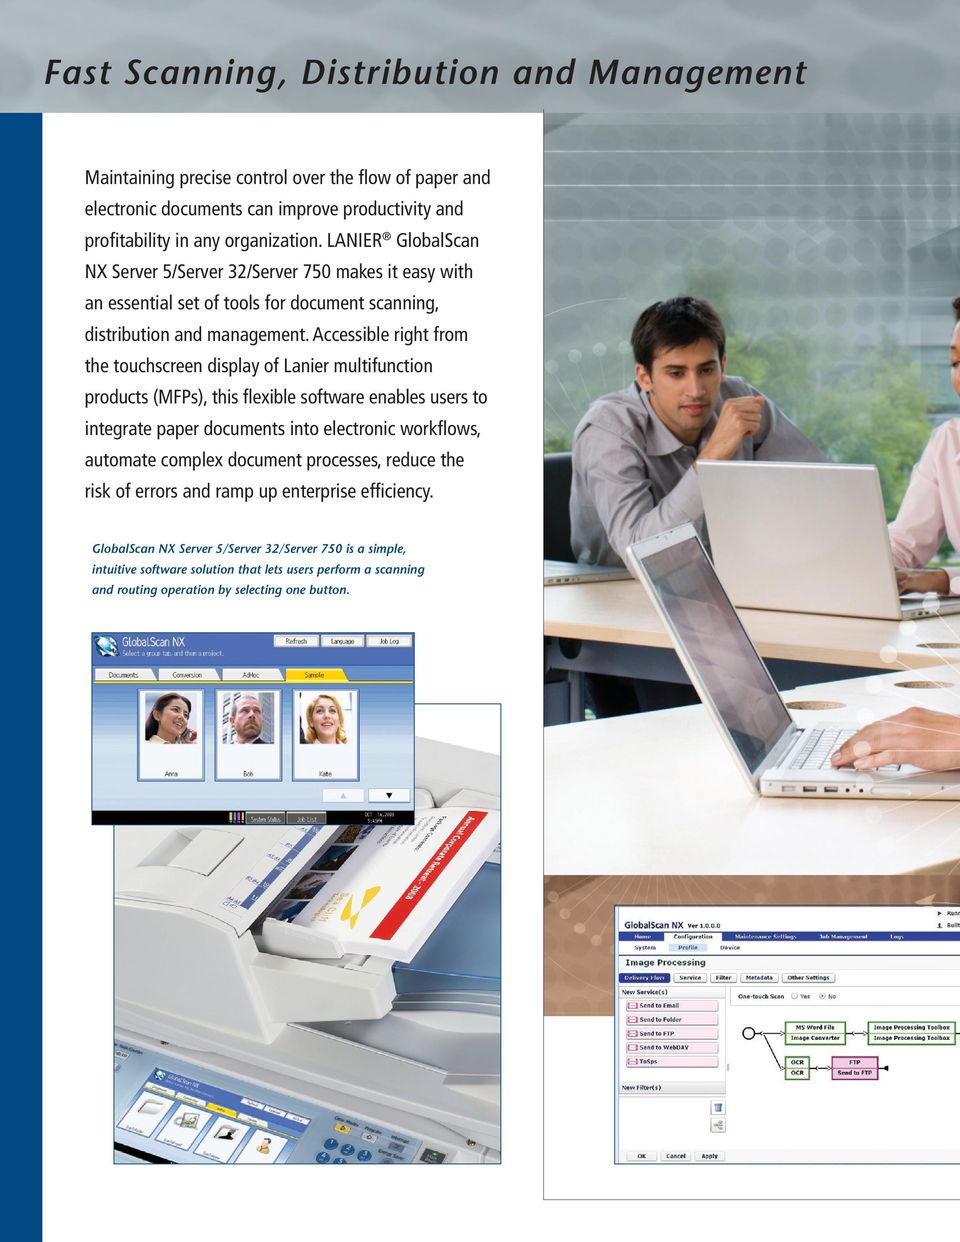 Accessible right from the touchscreen display of Lanier multifunction products (MFPs), this flexible software enables users to integrate paper documents into electronic workflows, automate